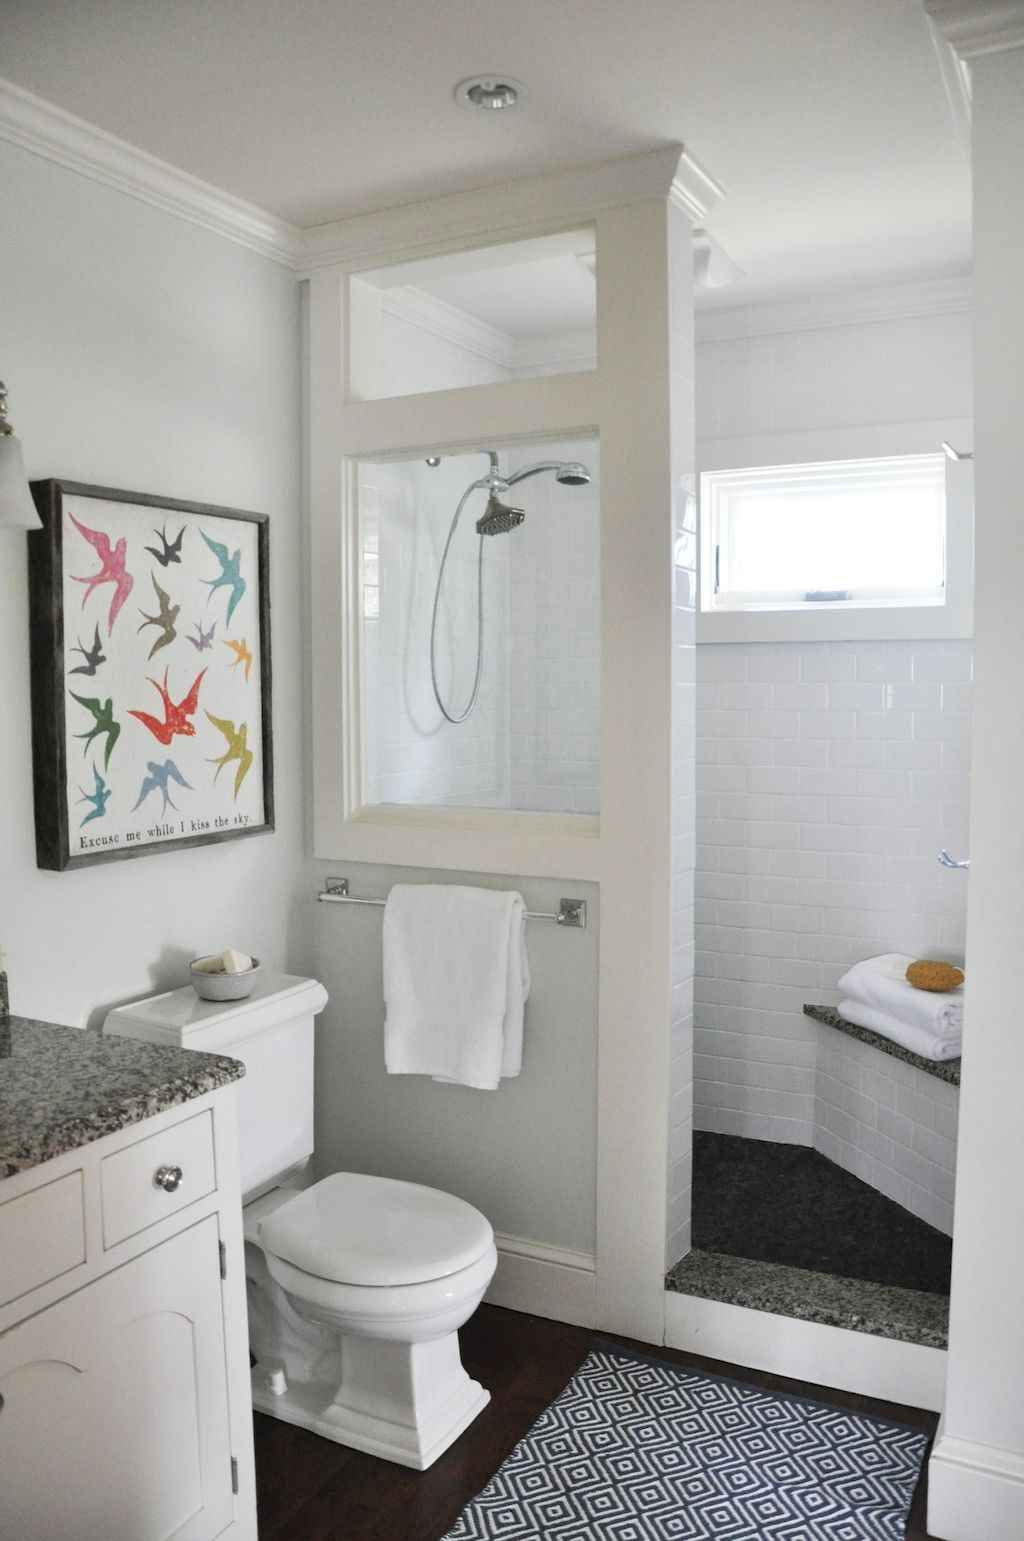 55 Cool Bathroom Shower Remodel Ideas Small Bathroom With Shower Small Bathroom Window In Shower